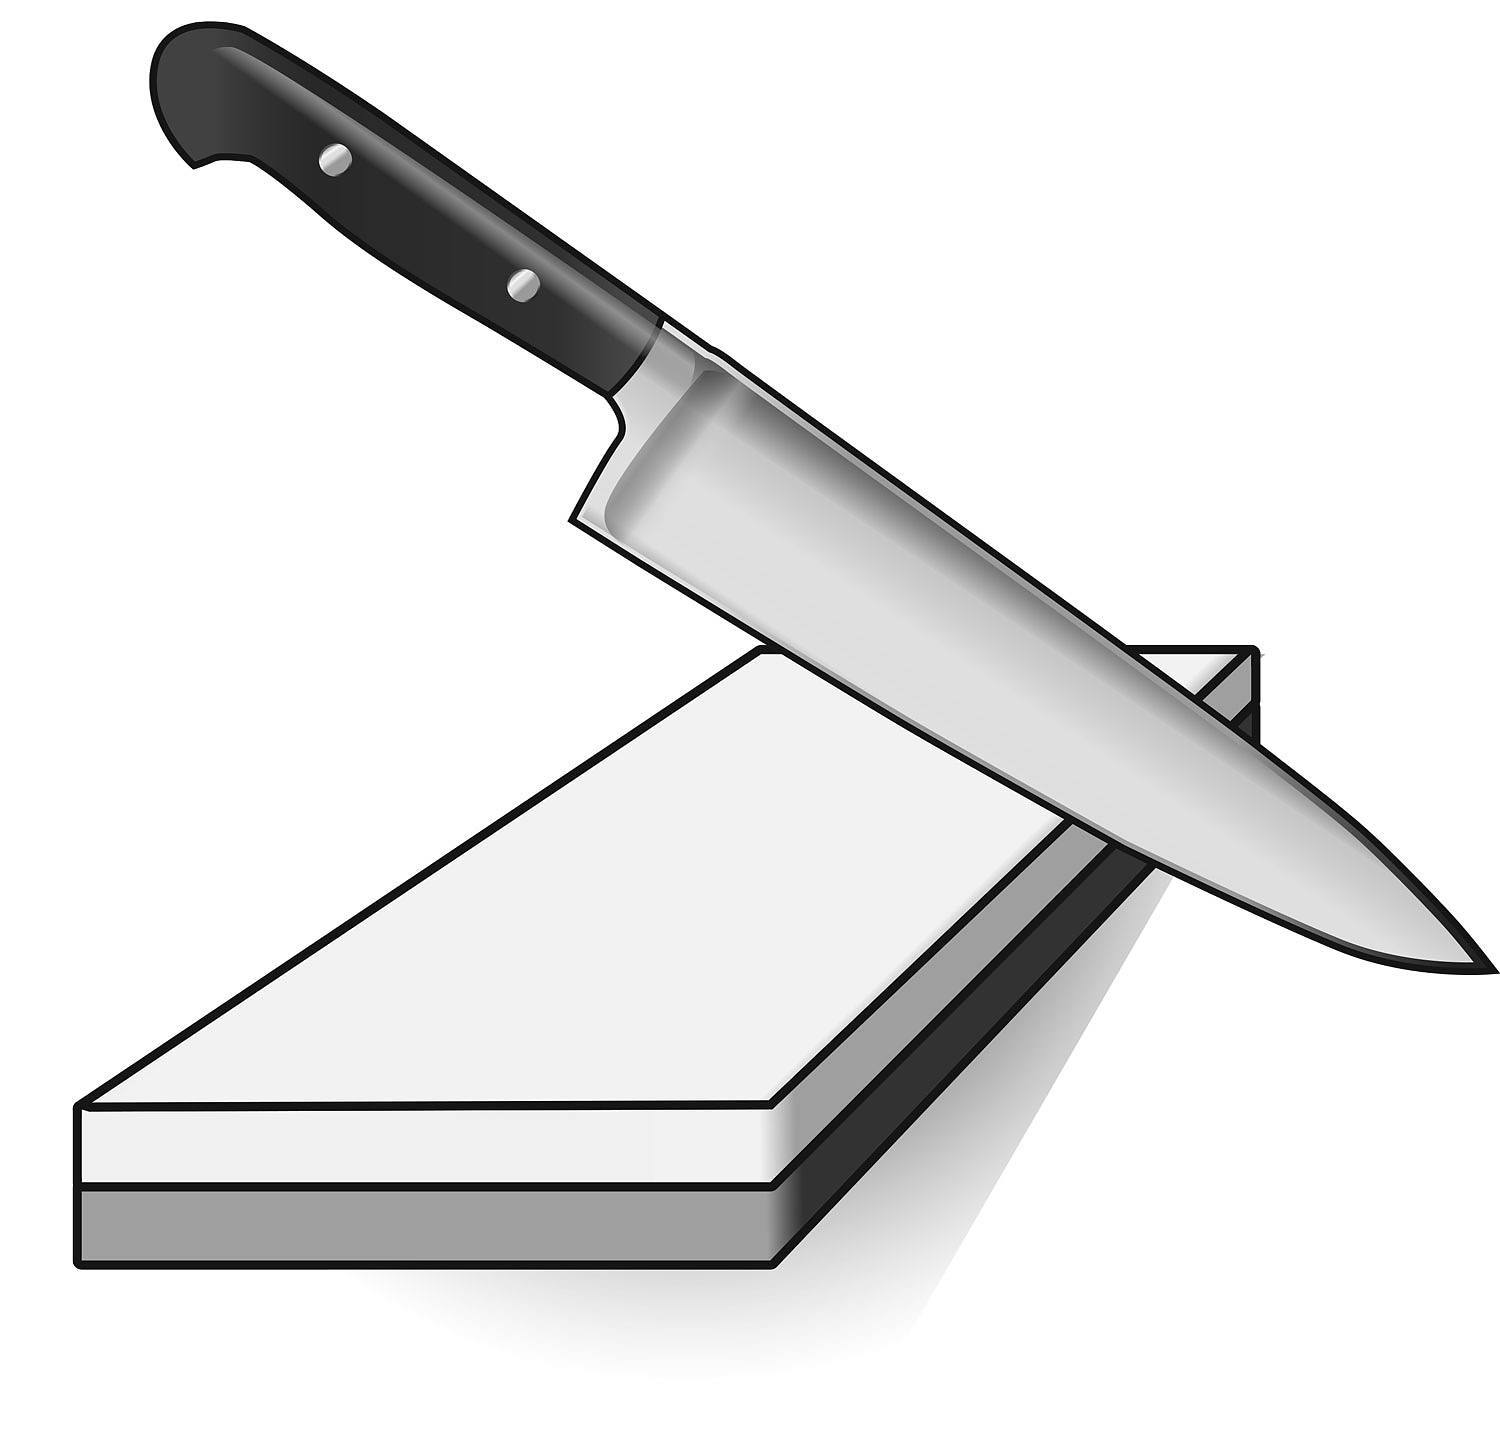 Sharpener for knives - an indispensable tool in every kitchen